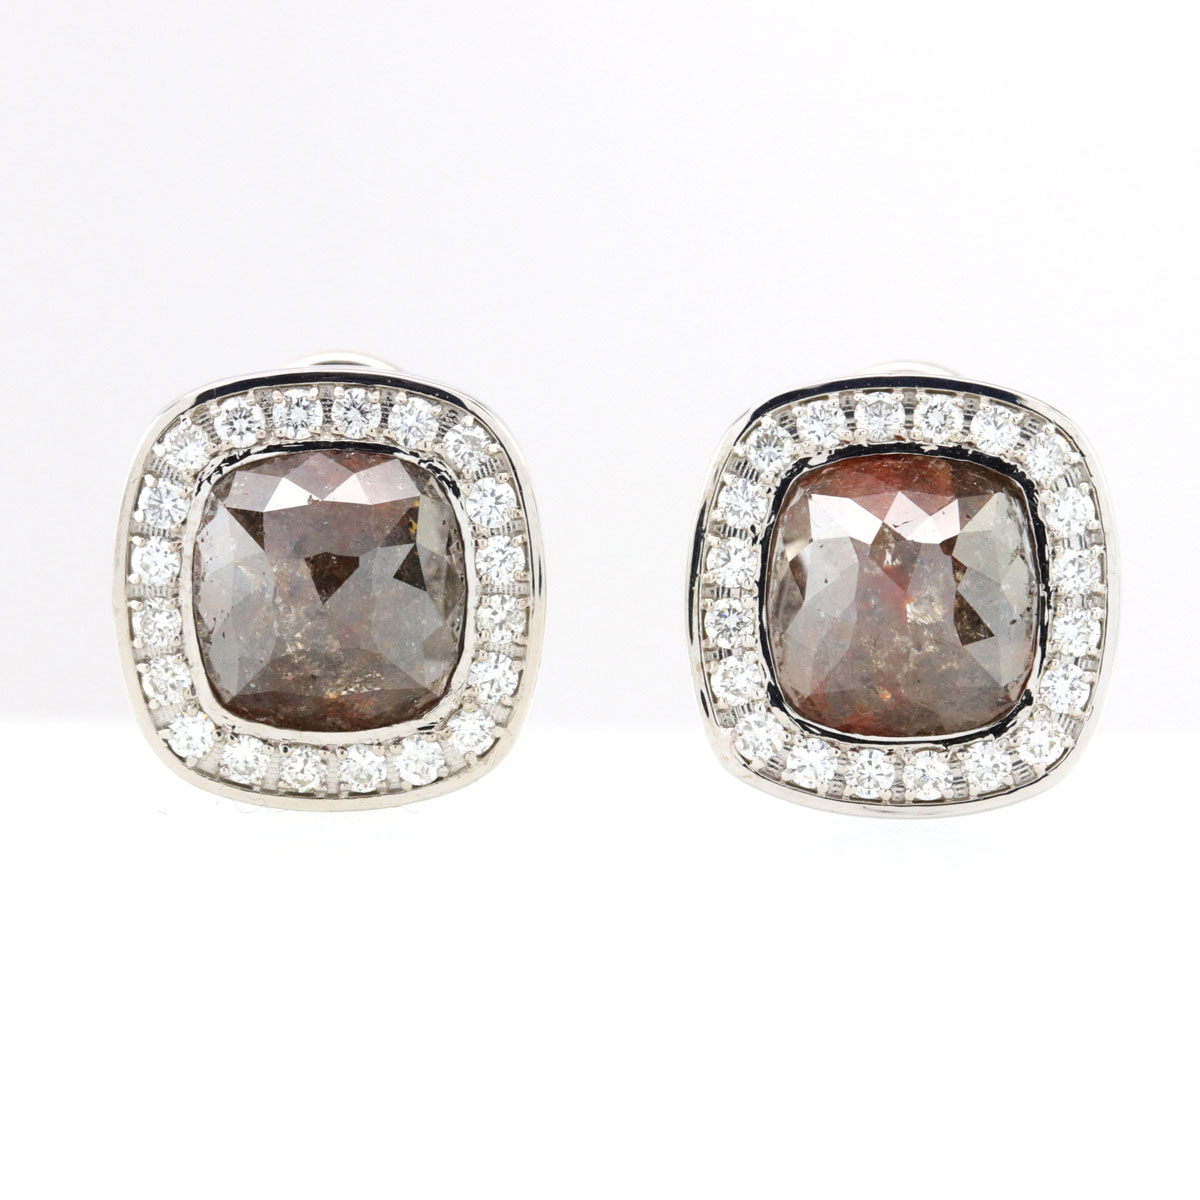 Chocolate Cabochon Fancy Colored Diamond Earrings 14K White Gold